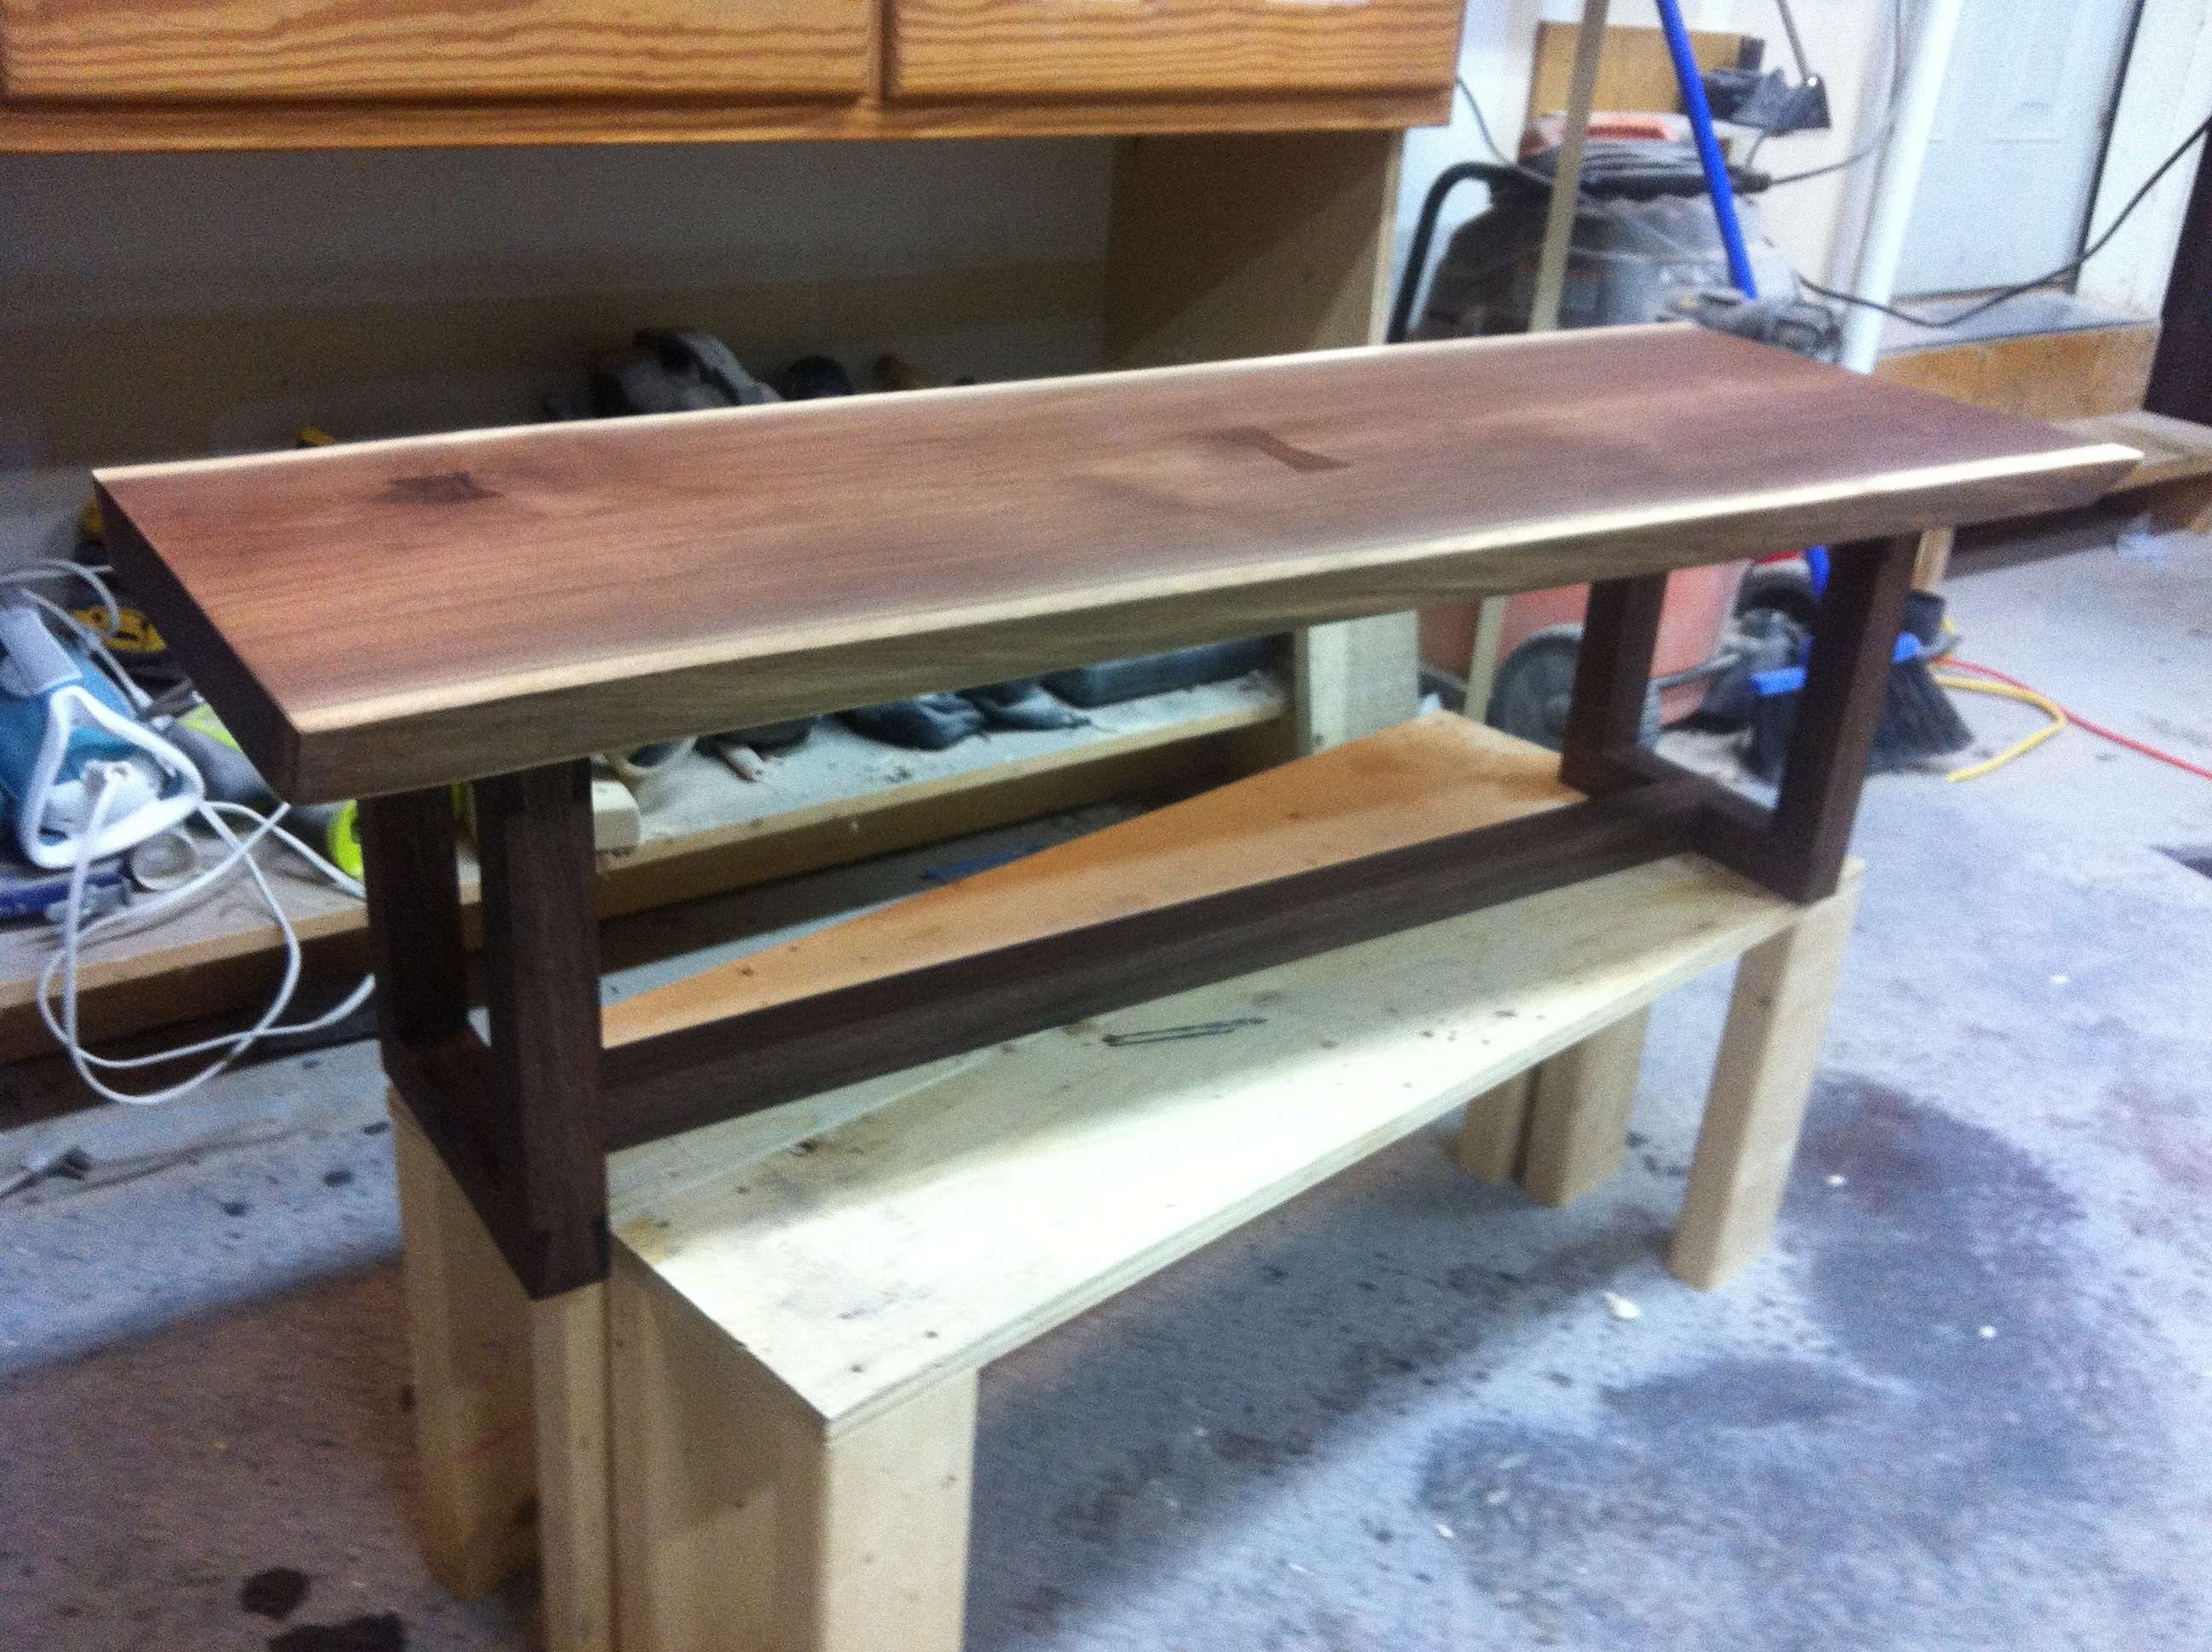 2017 Live Edge Coffee Tables Regarding Live Edge Coffee Table, Black Walnut : Woodworking (View 1 of 20)